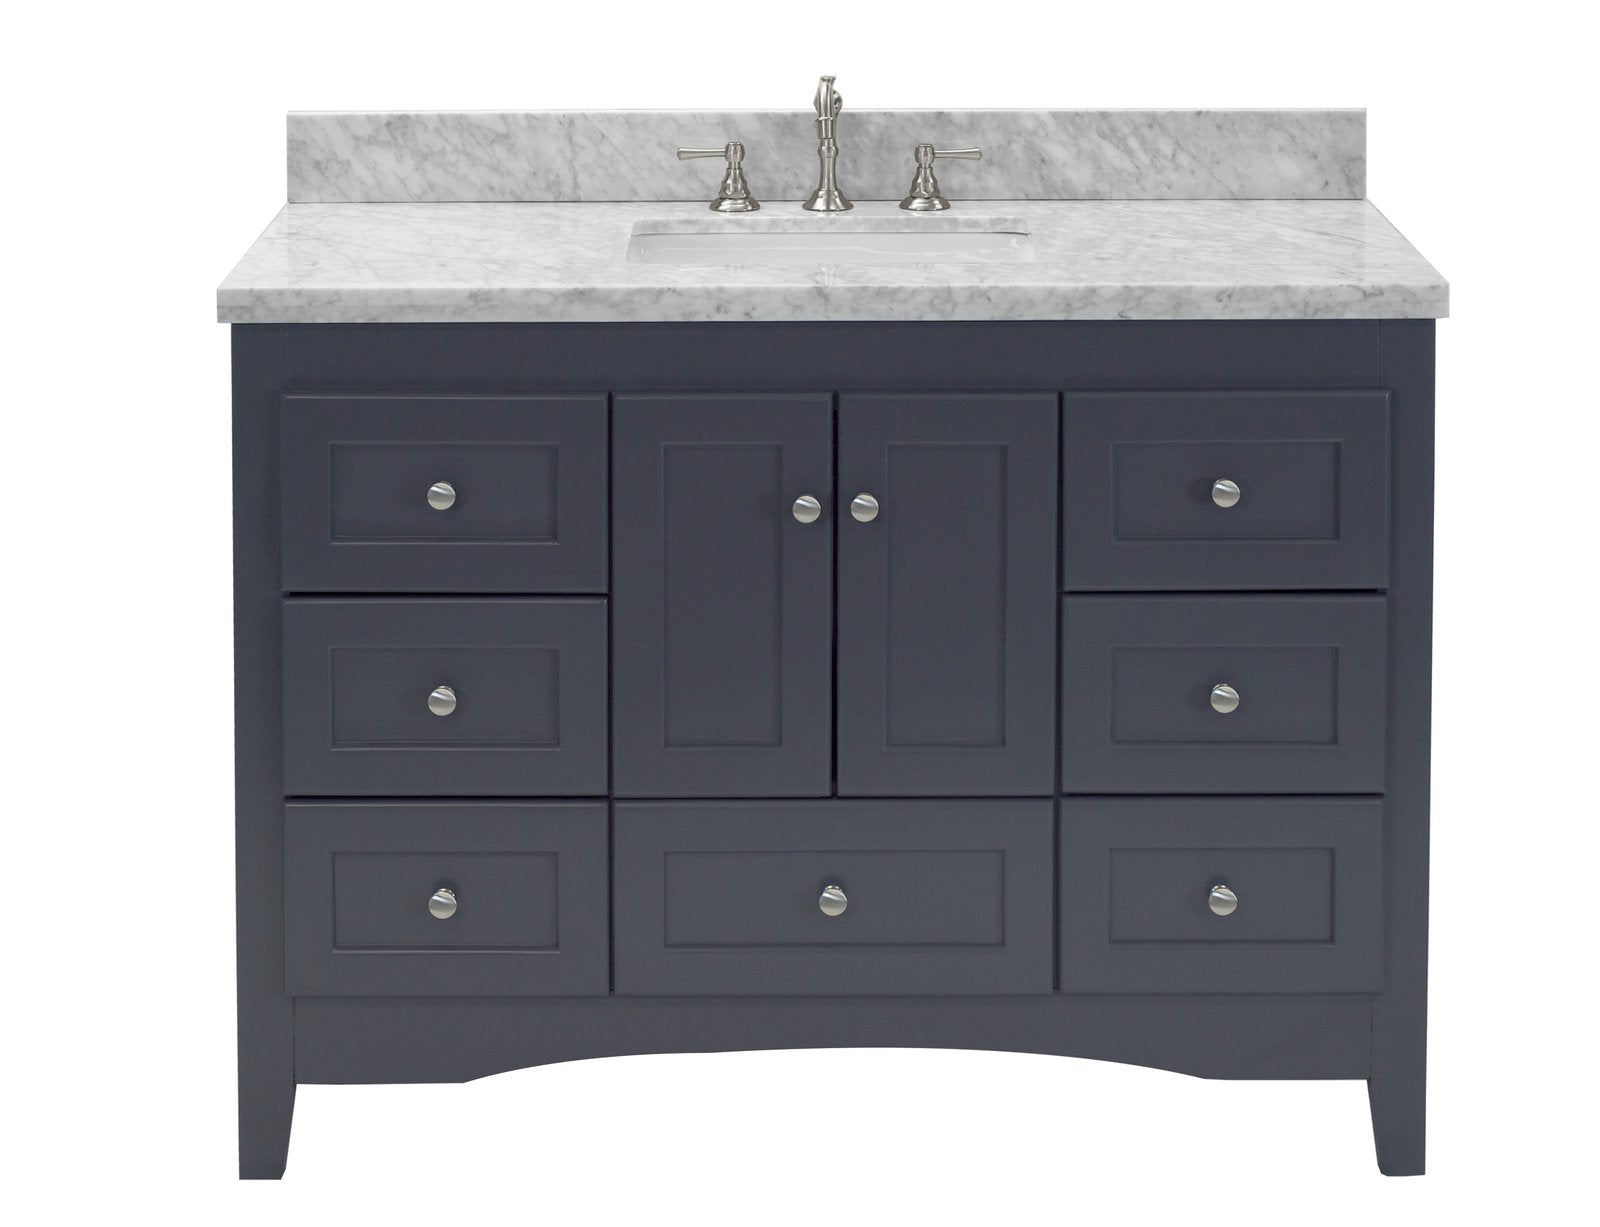 Abbey 48 Shaker Style Bathroom Vanity With Carrara Marble Top Kitchenbathcollection